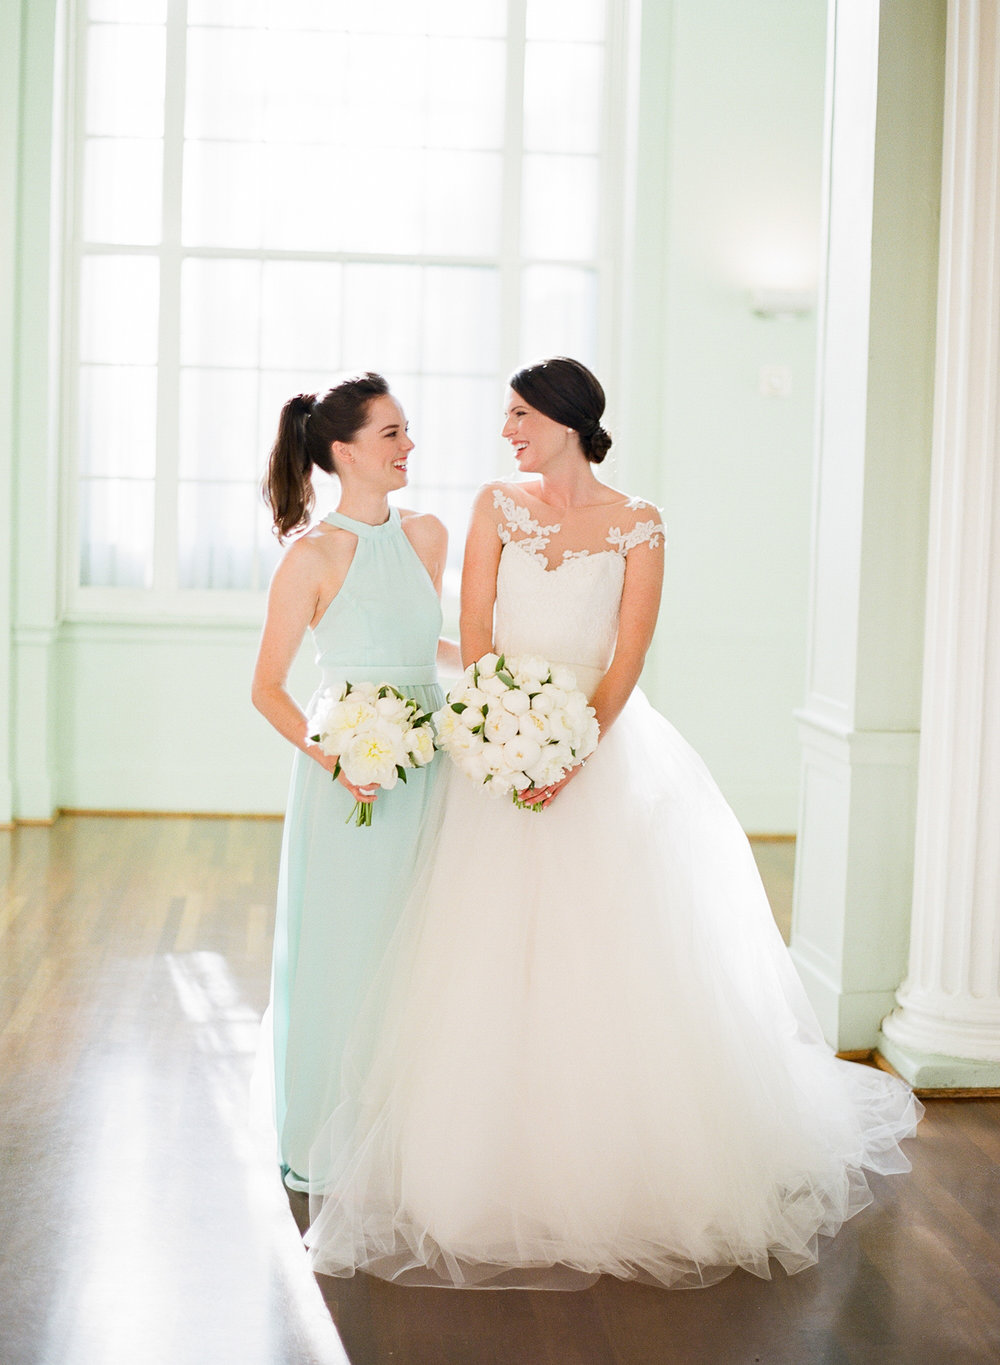 SouthernWeddings_SawyerBaird (134 of 388).JPG